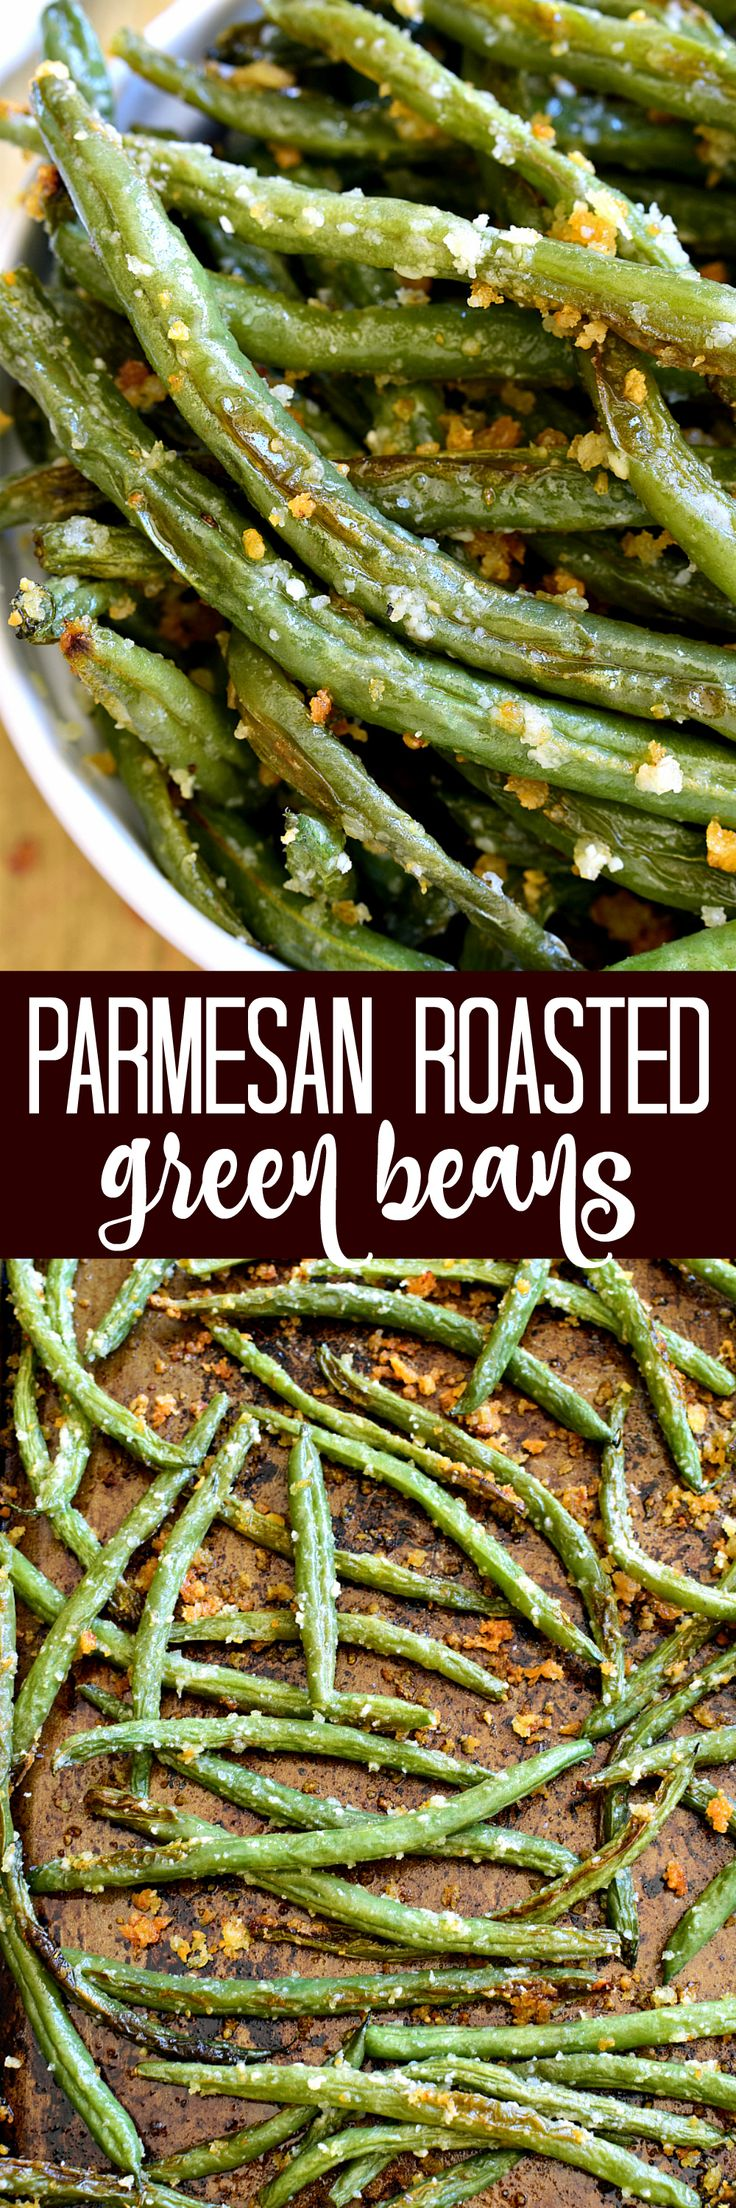 All Things Savory: Parmesan Roasted Green Beans